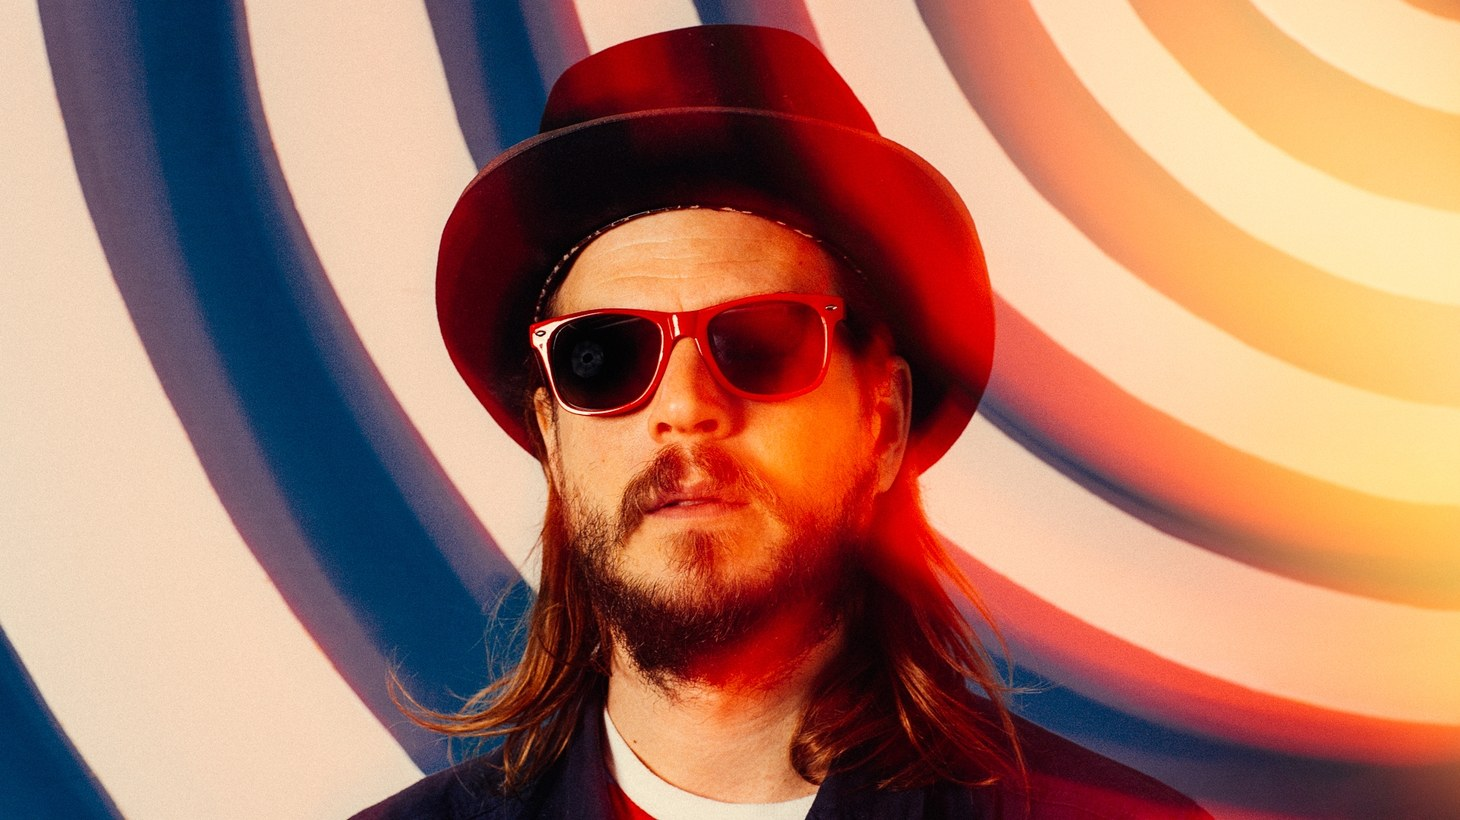 """Marco Benevento is a nimble artist who seems to be comfortable playing with just about anyone, including members of the Grateful Dead or Dan Auerbach. On the keyboard friendly song """"Let It Slide,"""" we hear a man who has freed himself."""